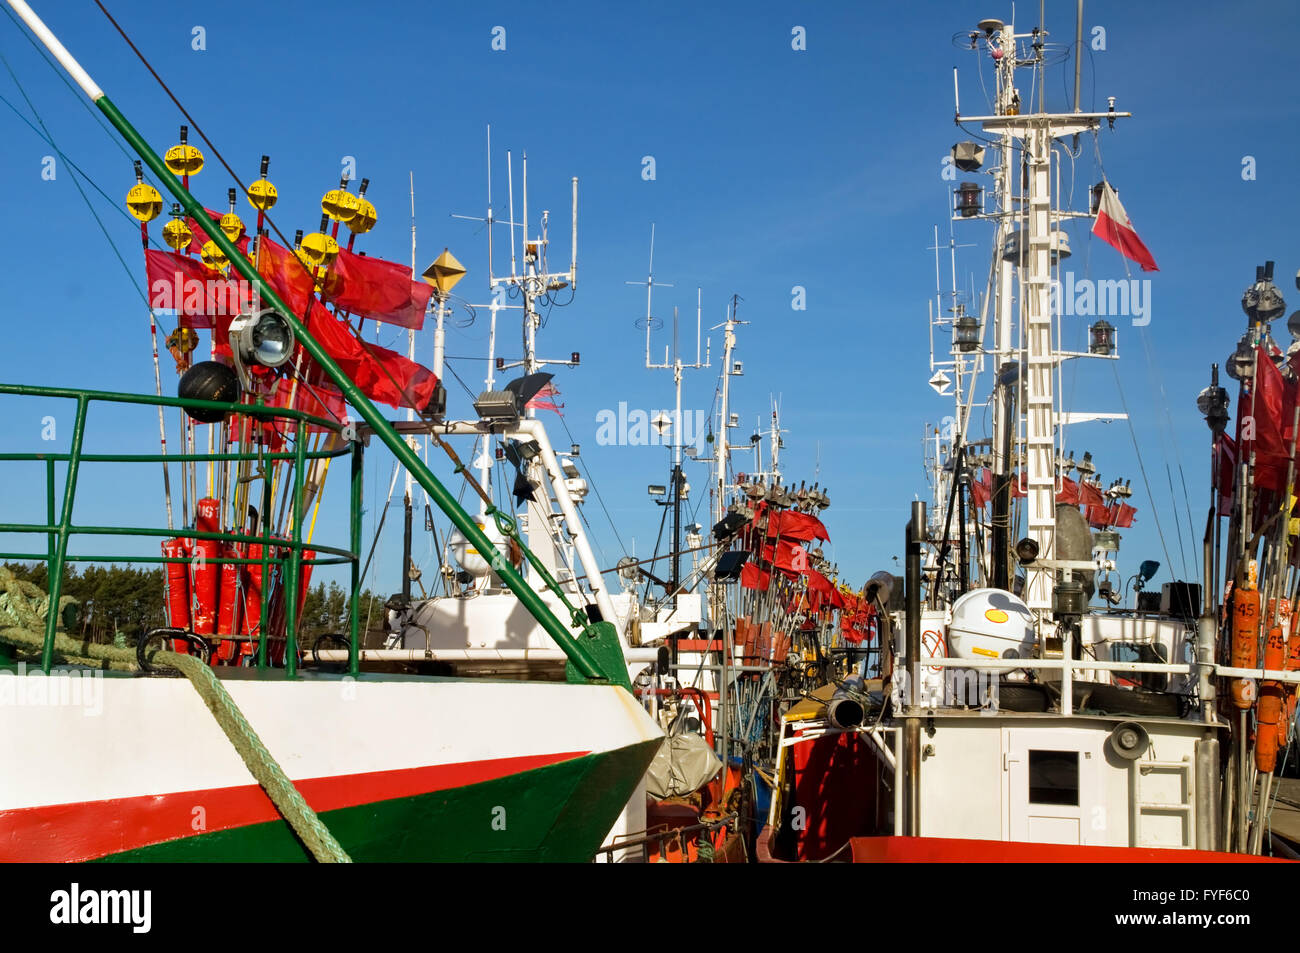 Ships close up in a harbor - Stock Image